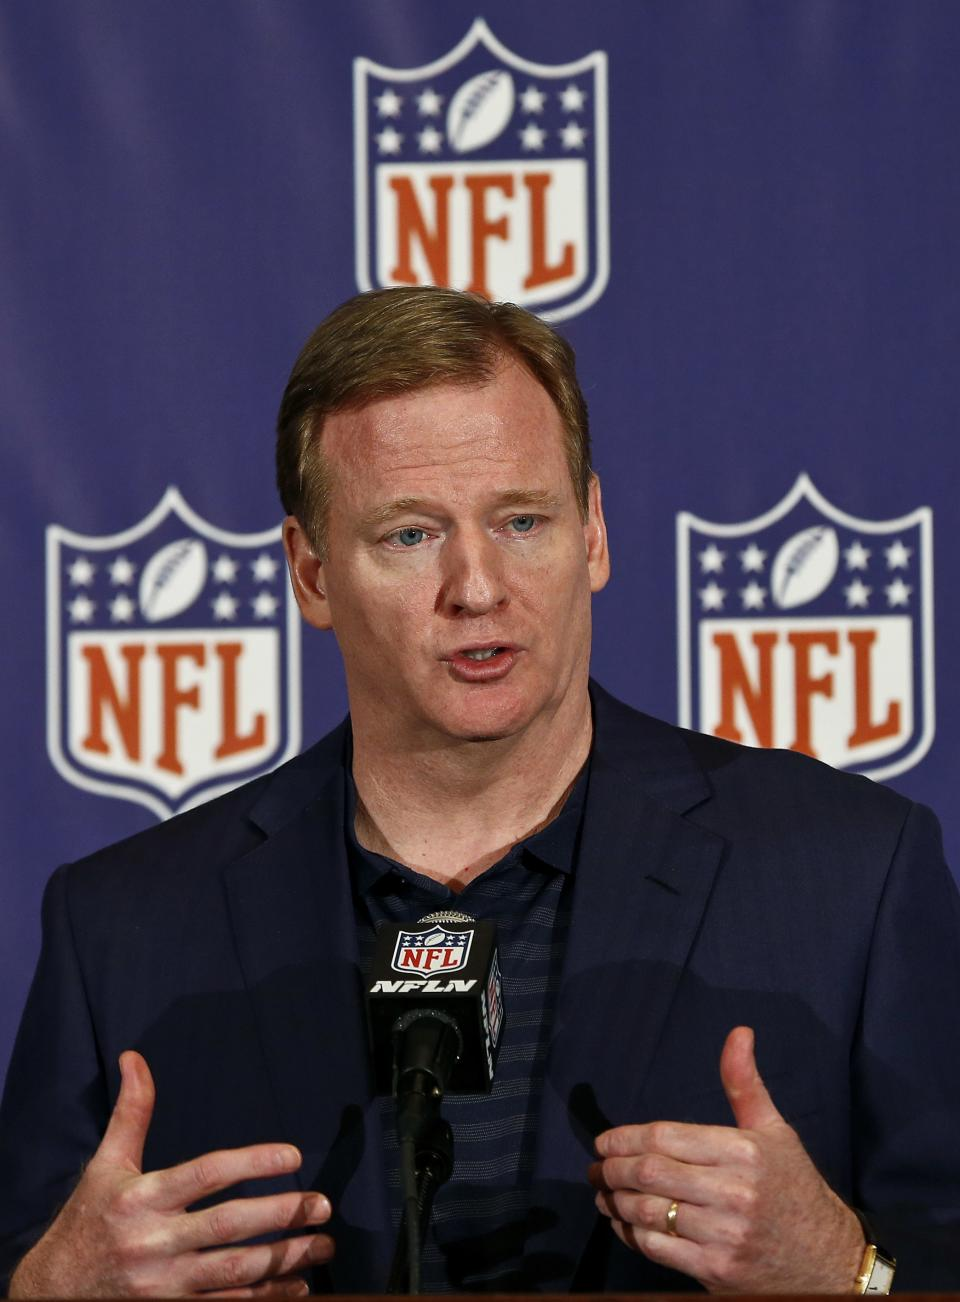 NFL Commissioner Roger Goodell answers a question from the media during a news conference at the annual NFL football meetings at the Arizona Biltmore, Wednesday, March 20, 2013, in Phoenix. (AP Photo/Ross D. Franklin)